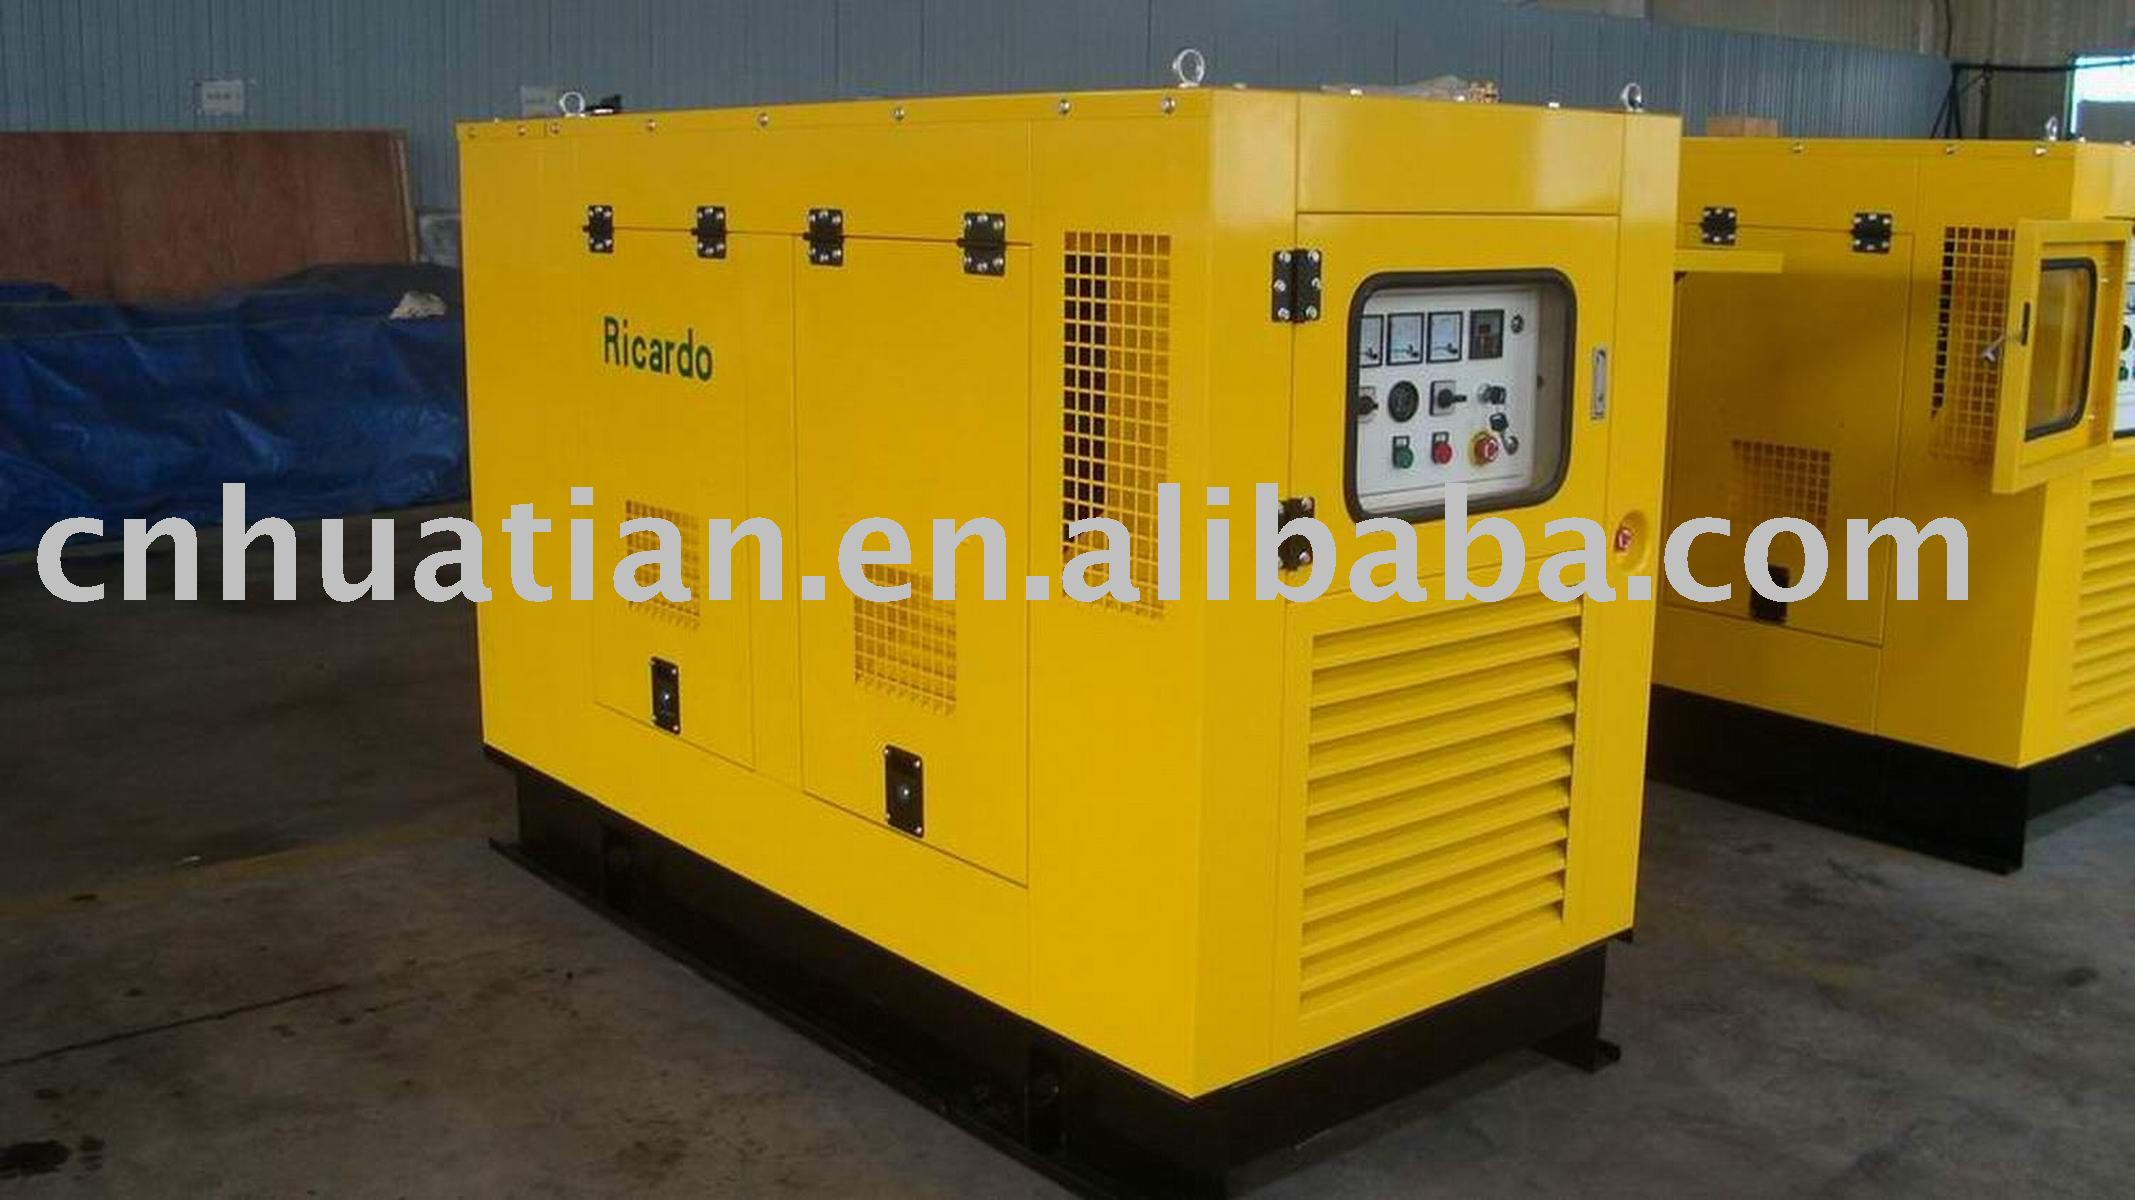 Silent Type Power Generator with Rated Output of 10 to 2,200kVA and Rated Speed of 1,500/1,800rpm